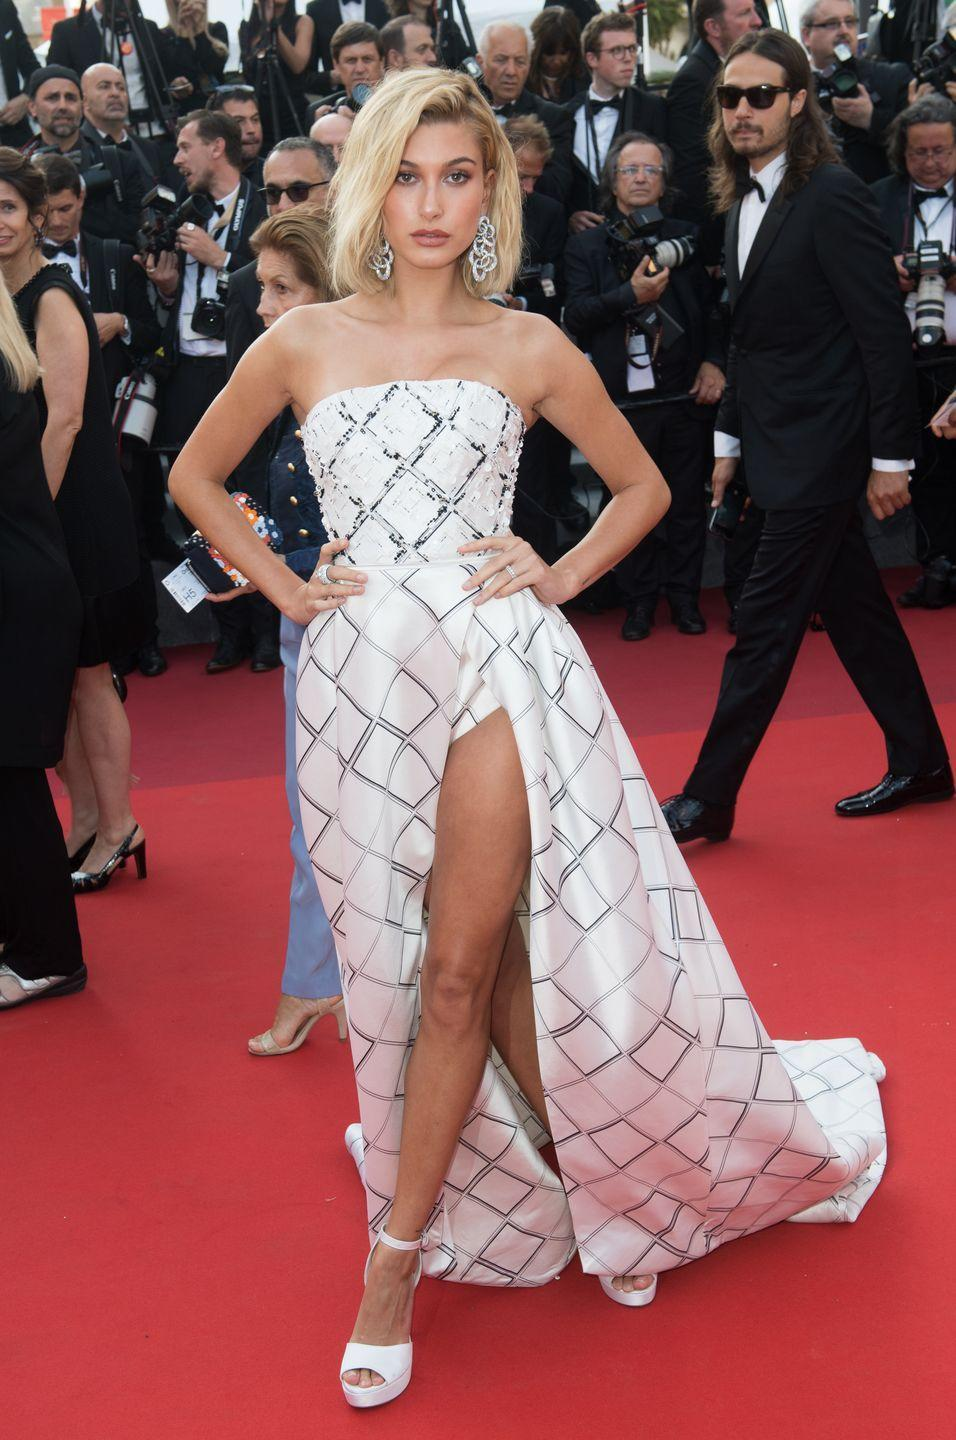 "<p>Hailey Baldwin<span class=""redactor-invisible-space""> wore a white Ralph & Russo gown to attend The Beguiled Cannes film premiere.</span></p>"